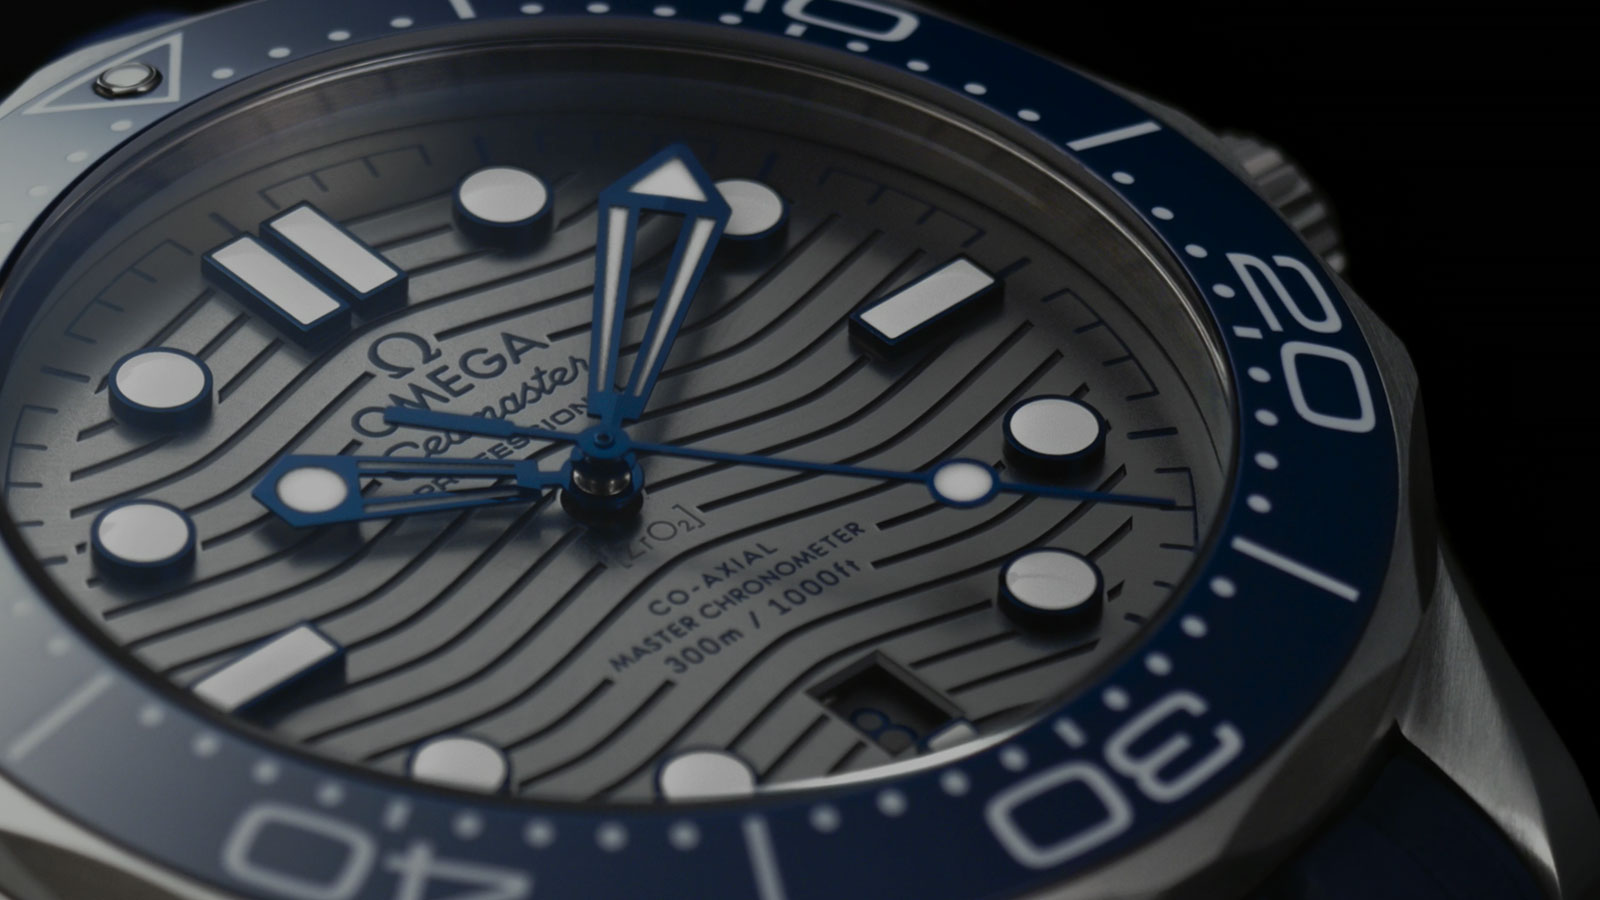 Seamaster Diver 300 M Kollektion - Baselworld 2018 - UHREN - Video - 49178